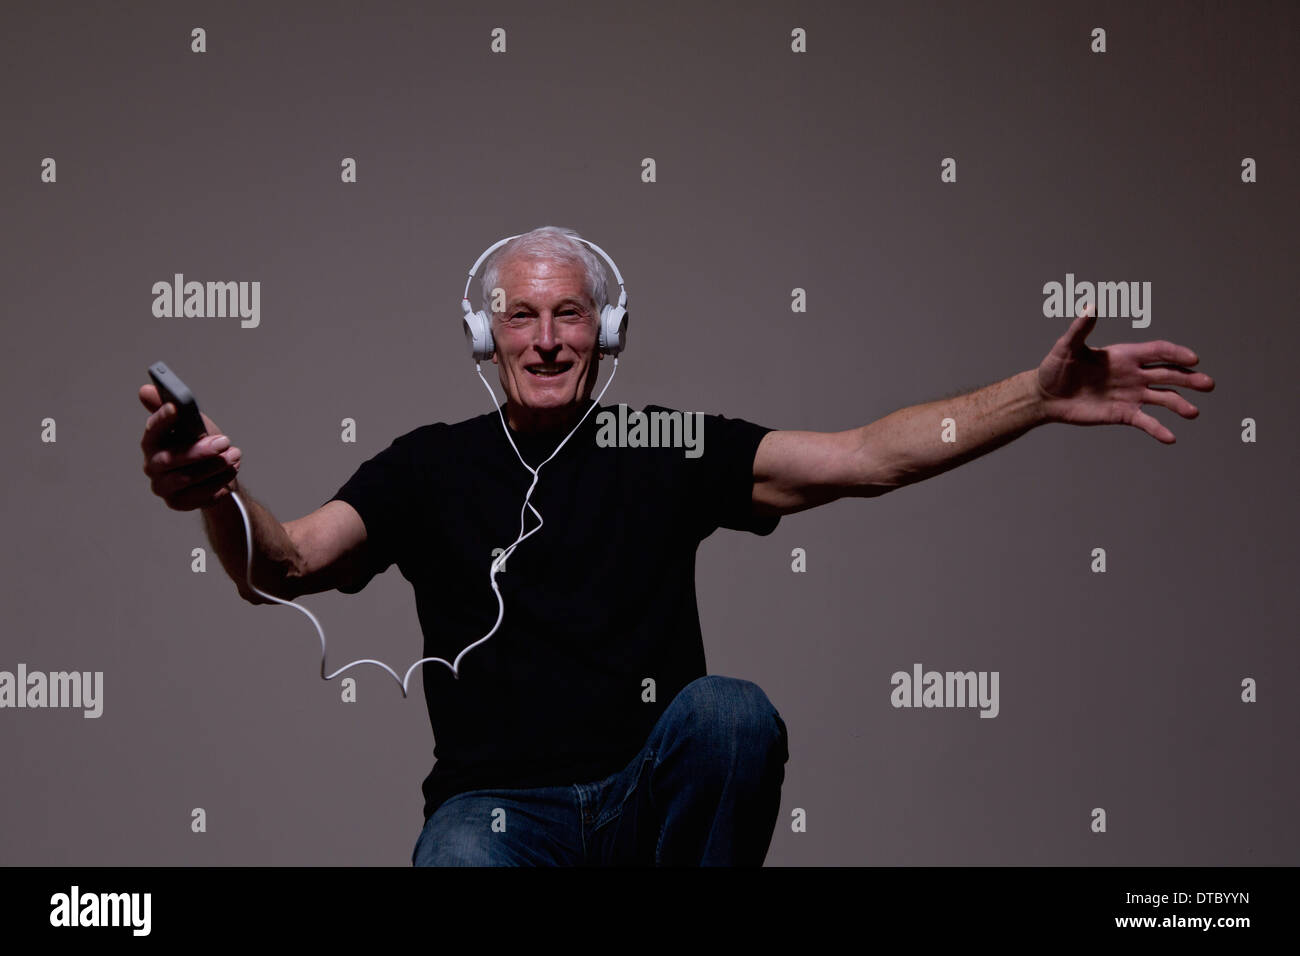 Portrait of senior man dancing to MP3 player on headphones - Stock Image